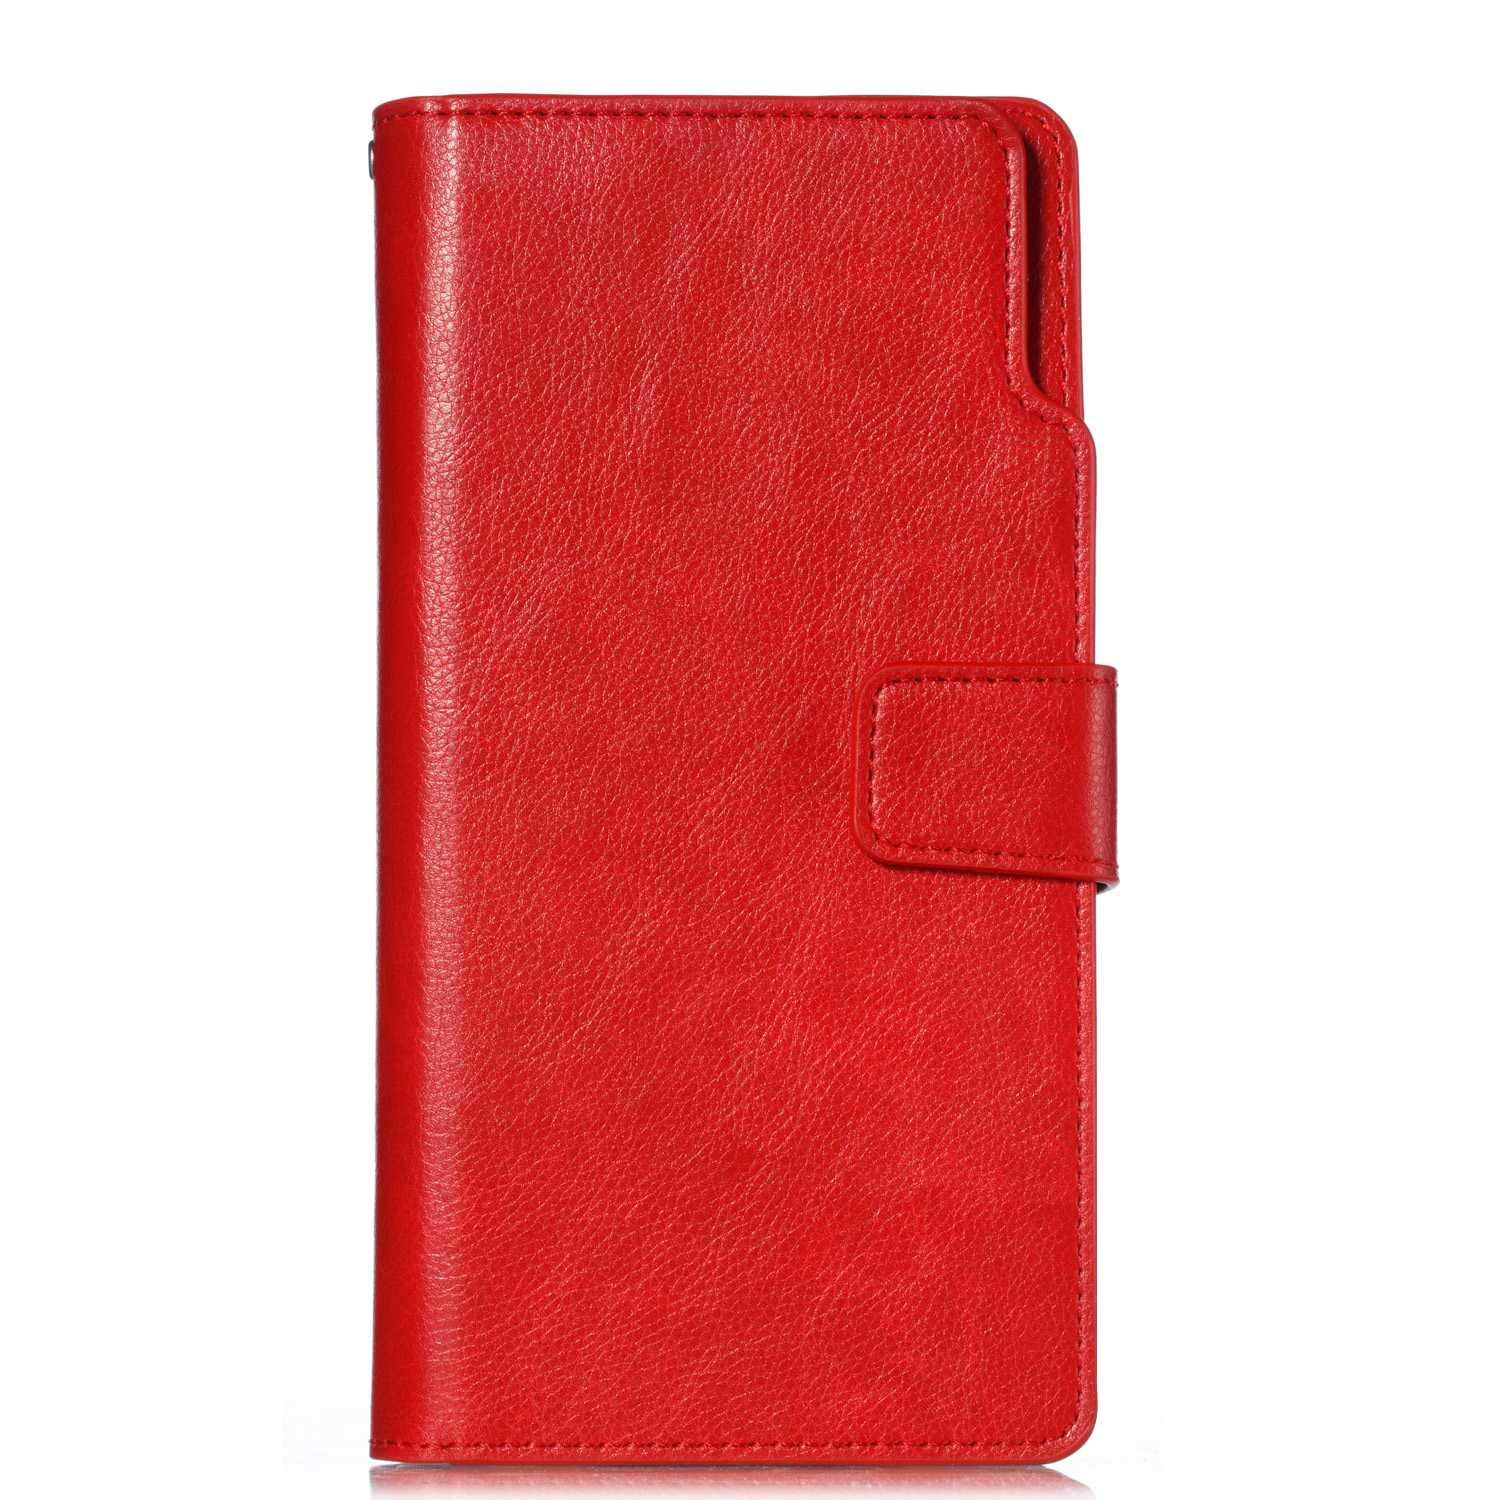 UNEXTATI Galaxy Note 8 Wallet Case, Leather Folding Flip Case with 9 Card Holder, Classic Design Protective Cover Bumper Case for Samsung Galaxy Note 8 (Red #4)